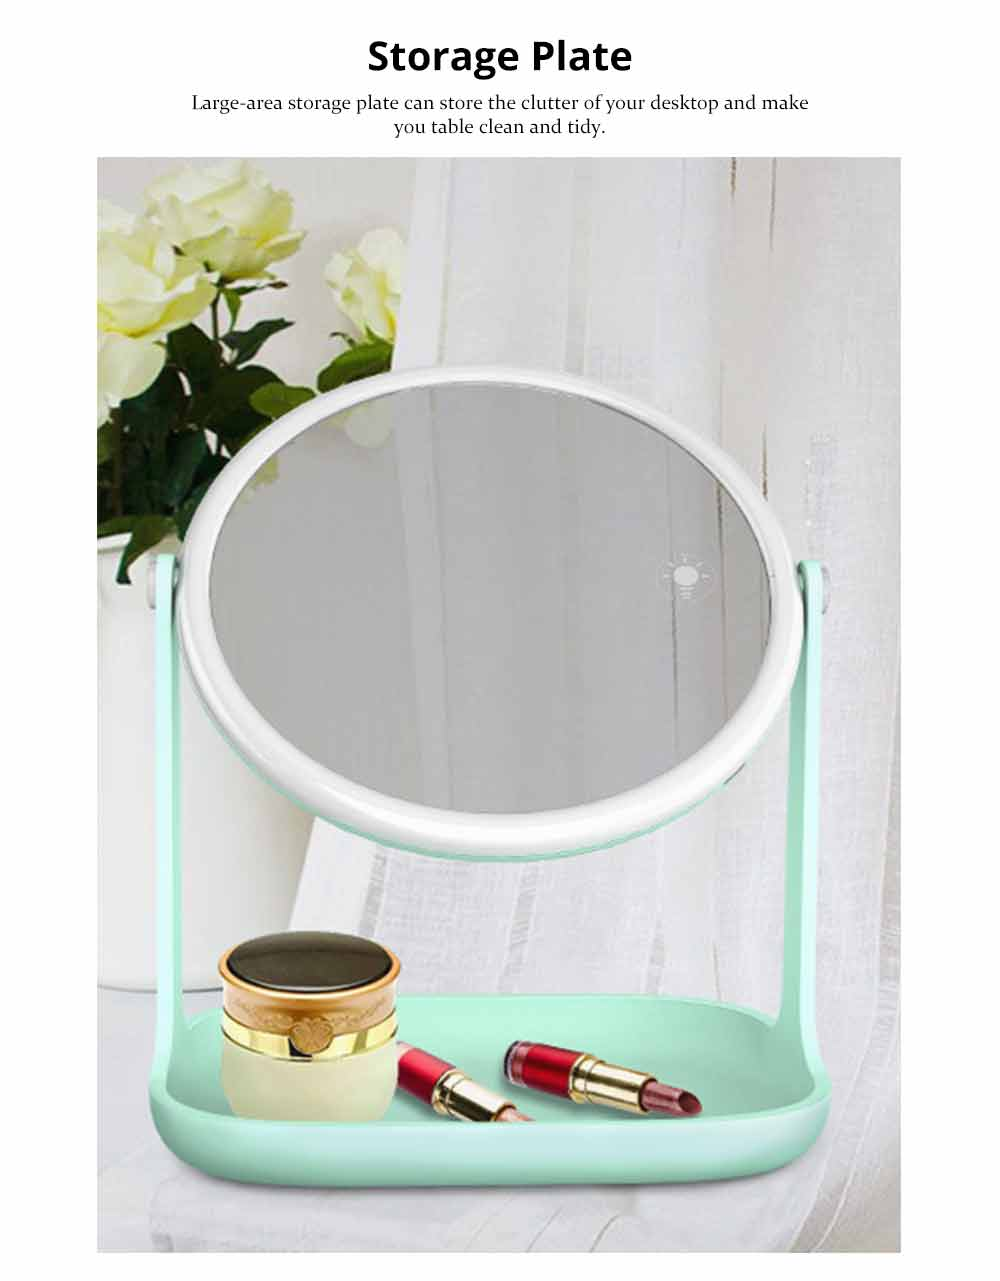 Makeup LED Mirror - Smart Touch Mirror with Lights For Vanity 5